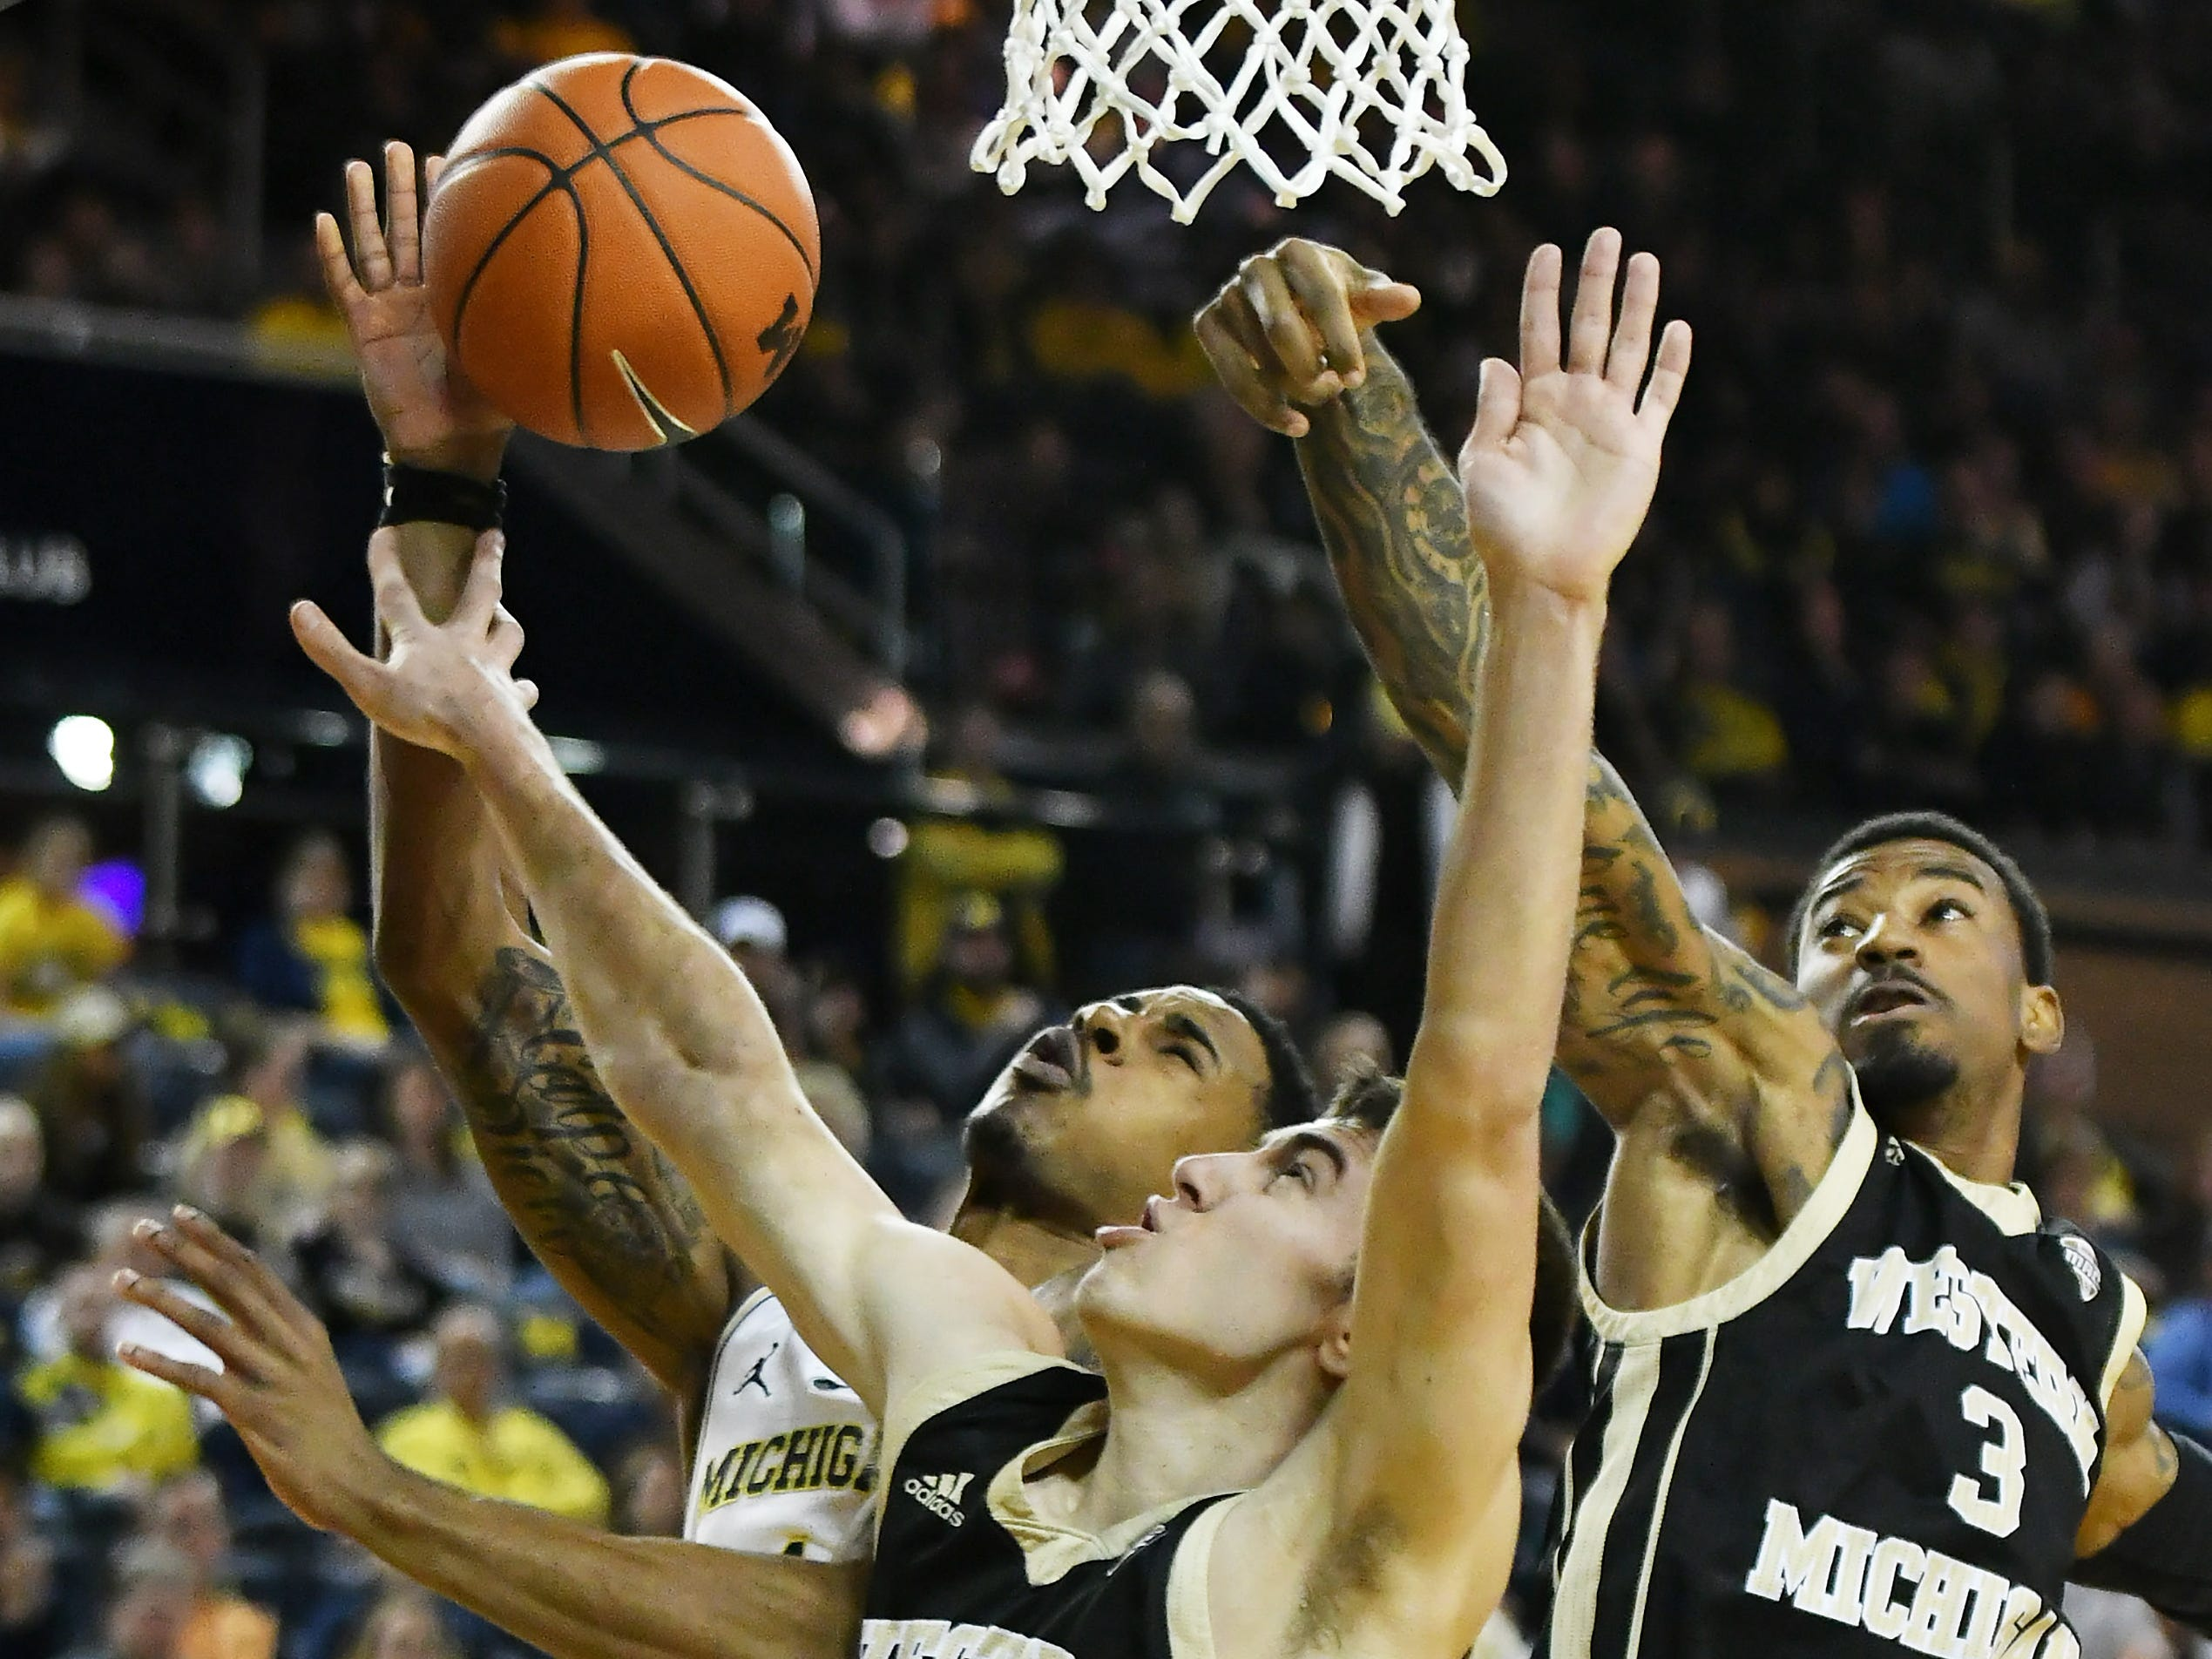 Western Michigan guard Jared Printy (4) and Western Michigan guard Josh Davis (3) converge on Michigan guard Charles Matthews (1) going to the basket in the first half as Michigan wins 70-62 over Western Michigan at Crisler Center in Ann Arbor, Mich. on Dec. 15, 2018.